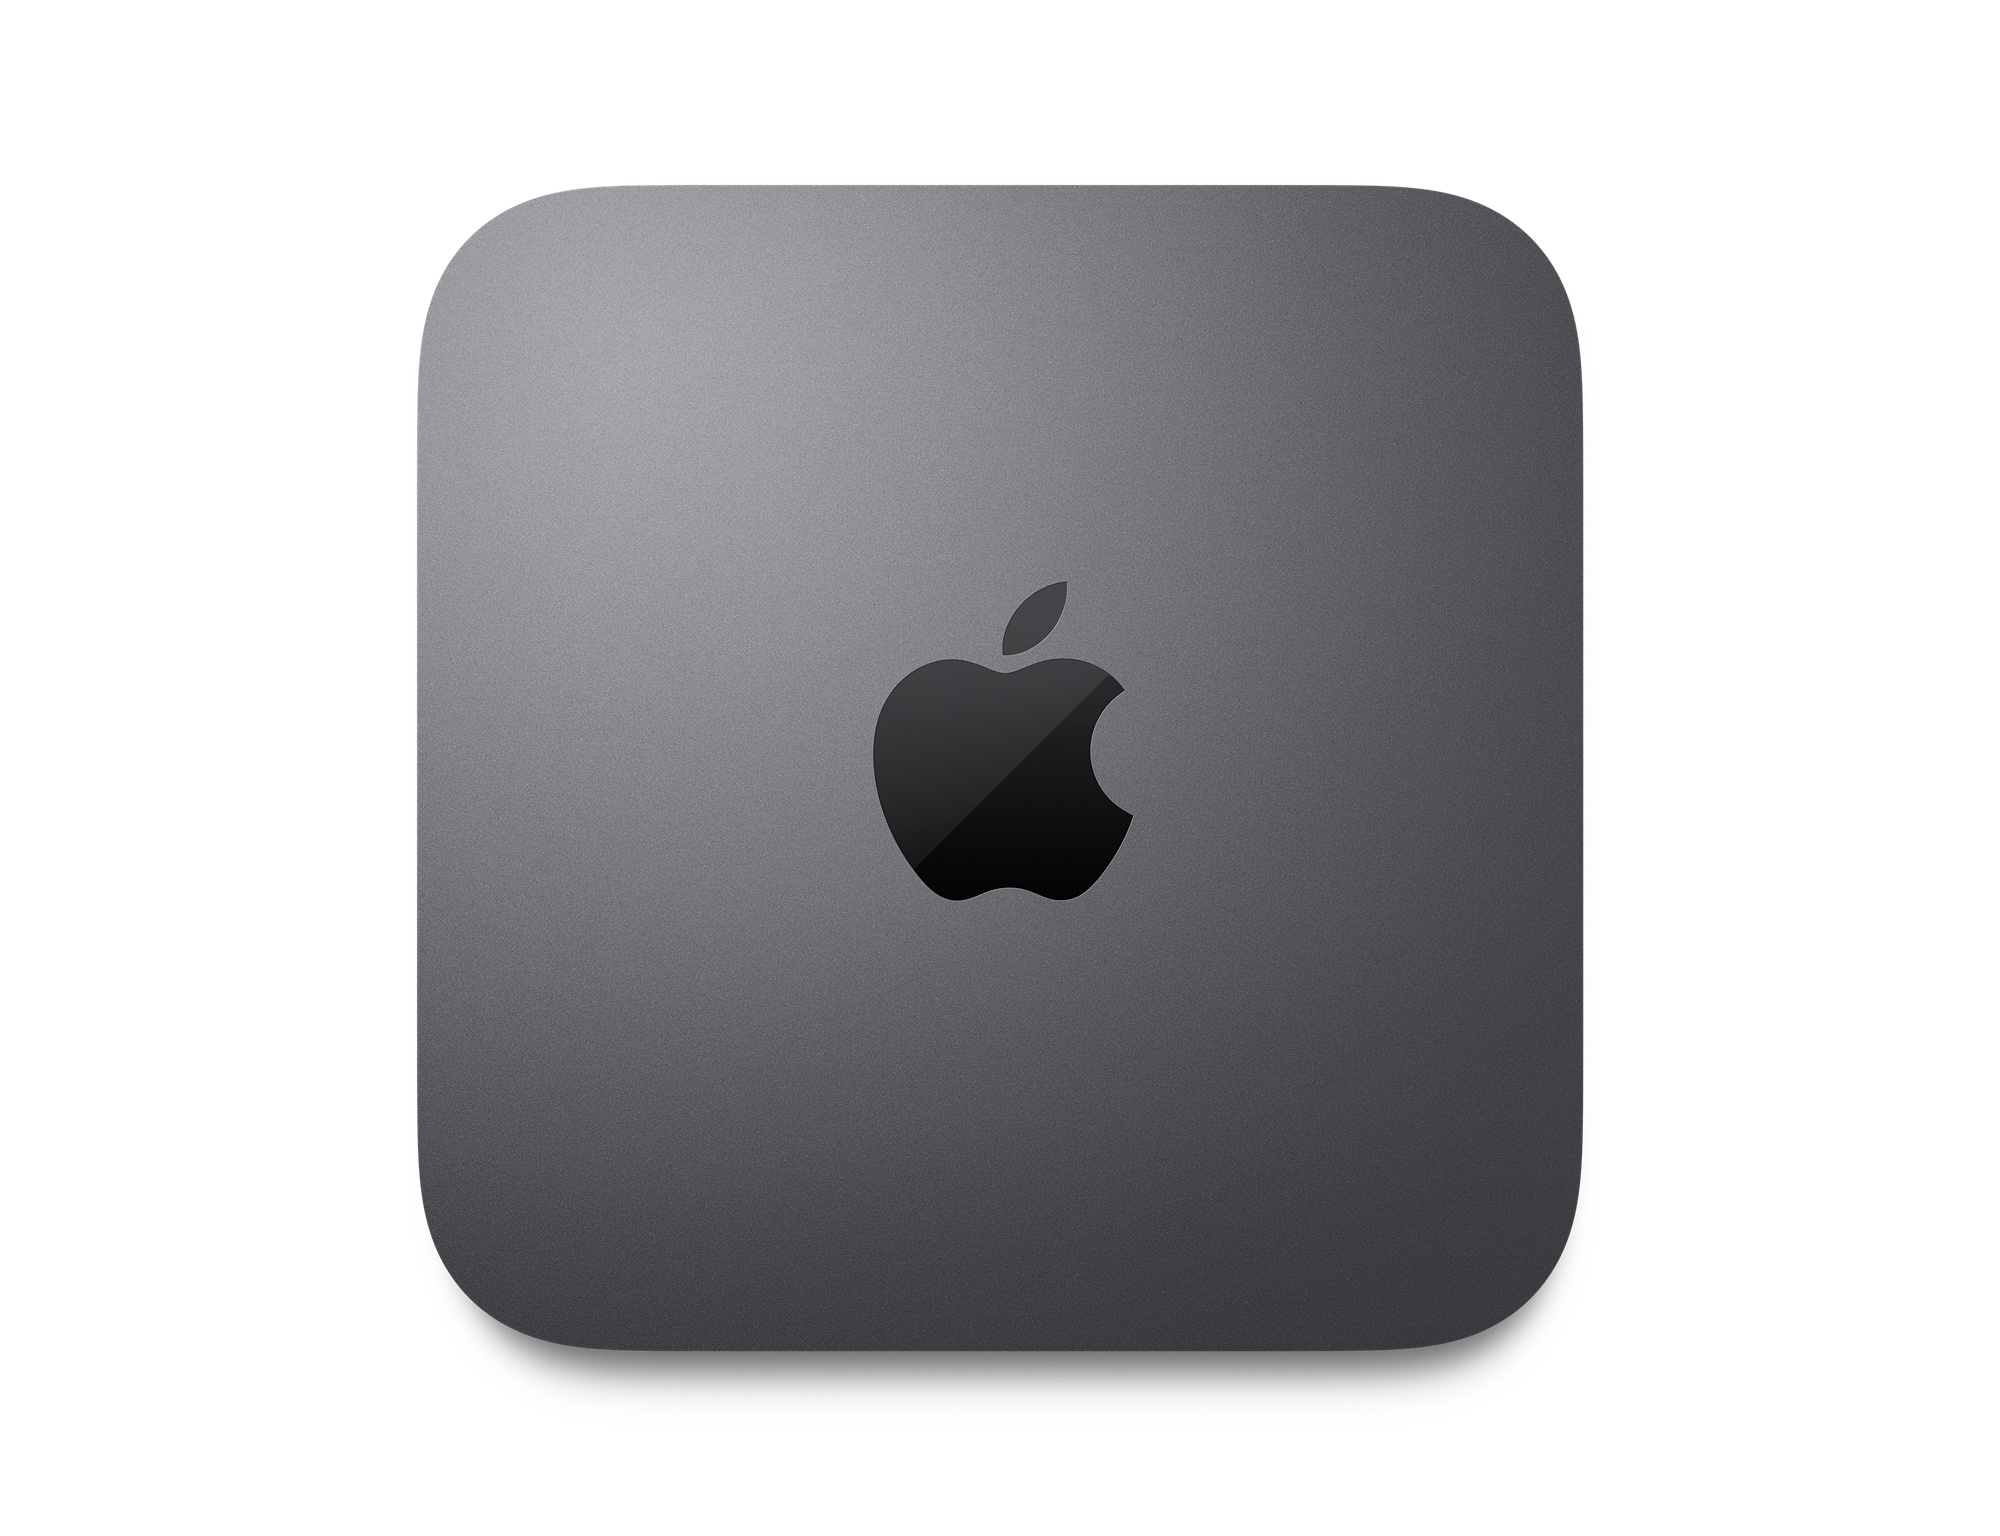 MAC MINI - 3.0GHz Intel Core i5 6-Core Processor with Intel UHD Graphics 630 512GB Storage